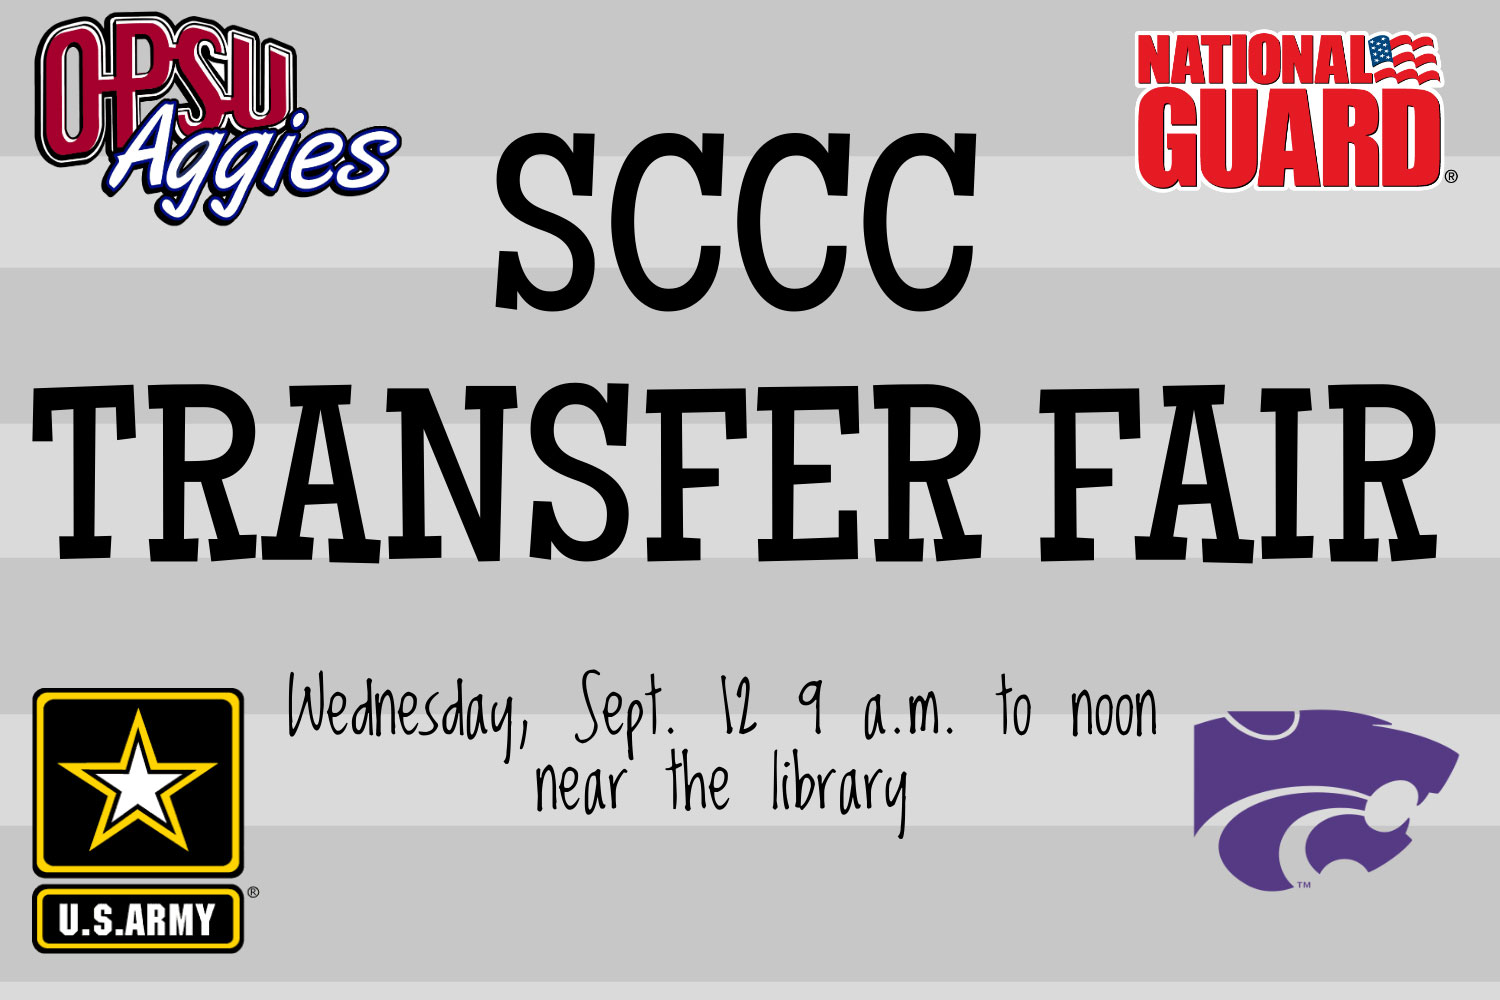 There will be many four-year colleges, along with the Army and National Guard at the Transfer Fair.